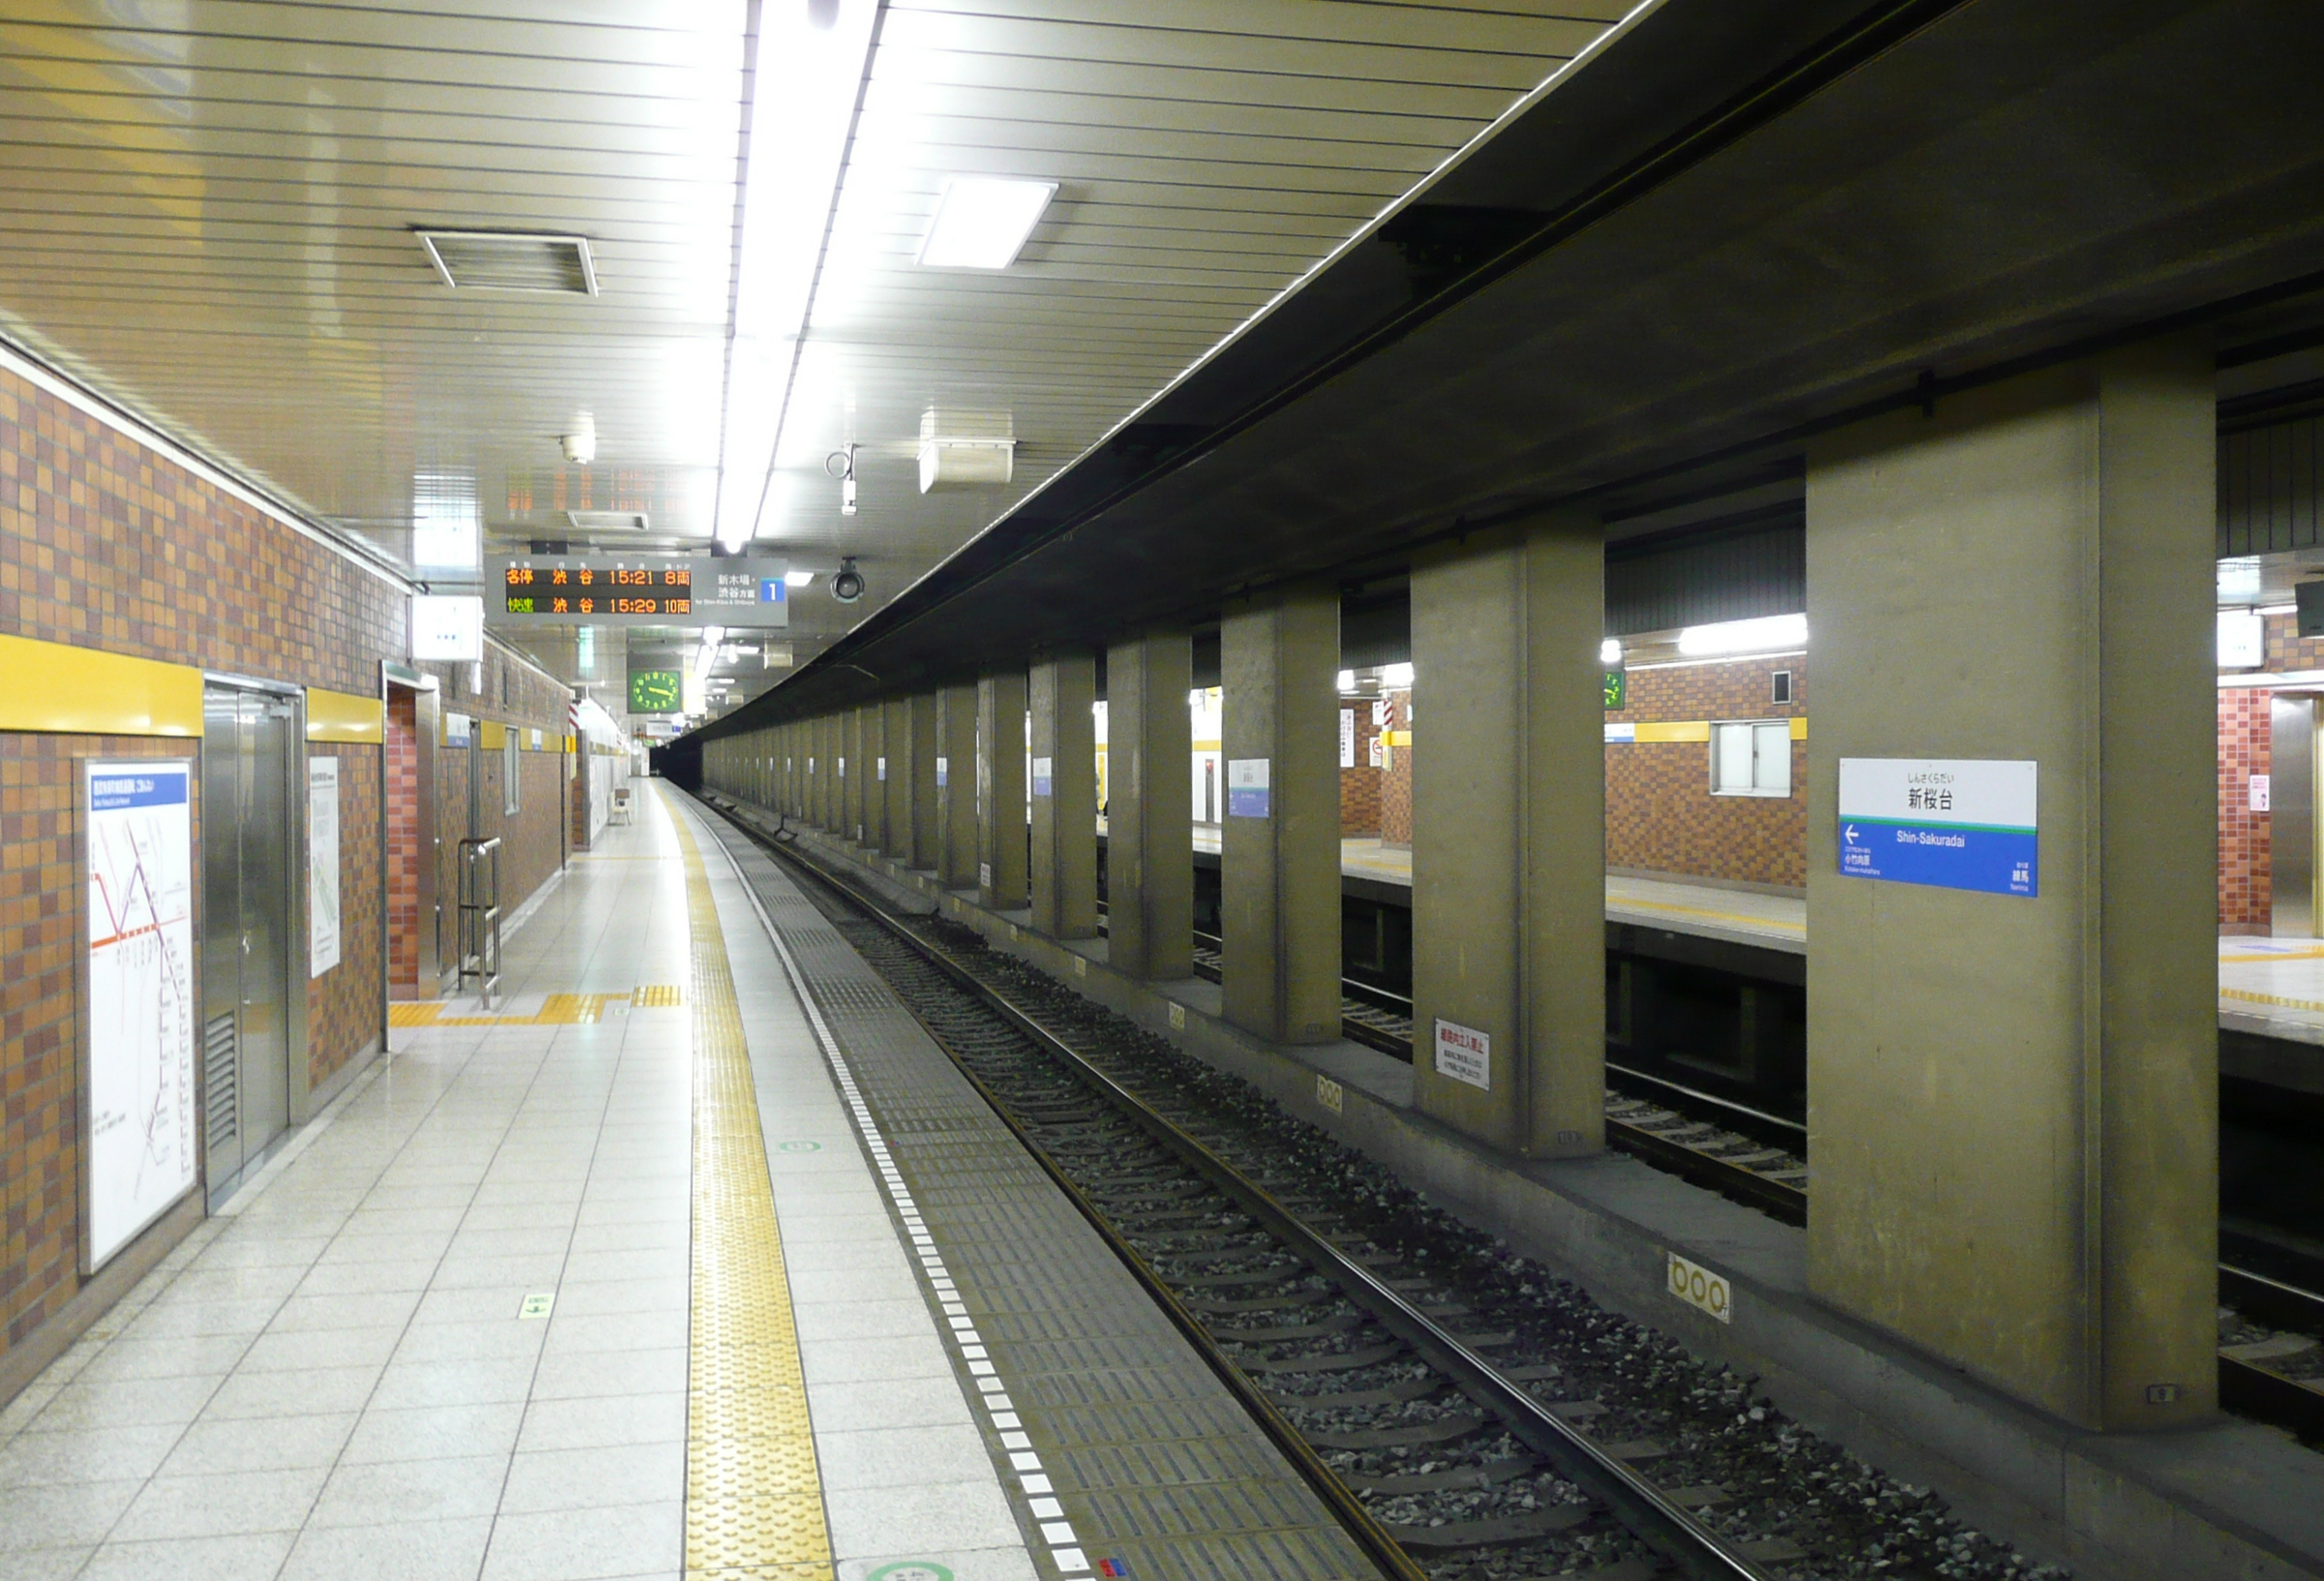 https://upload.wikimedia.org/wikipedia/commons/0/0f/Shinsakuradai-Sta-Platform.JPG